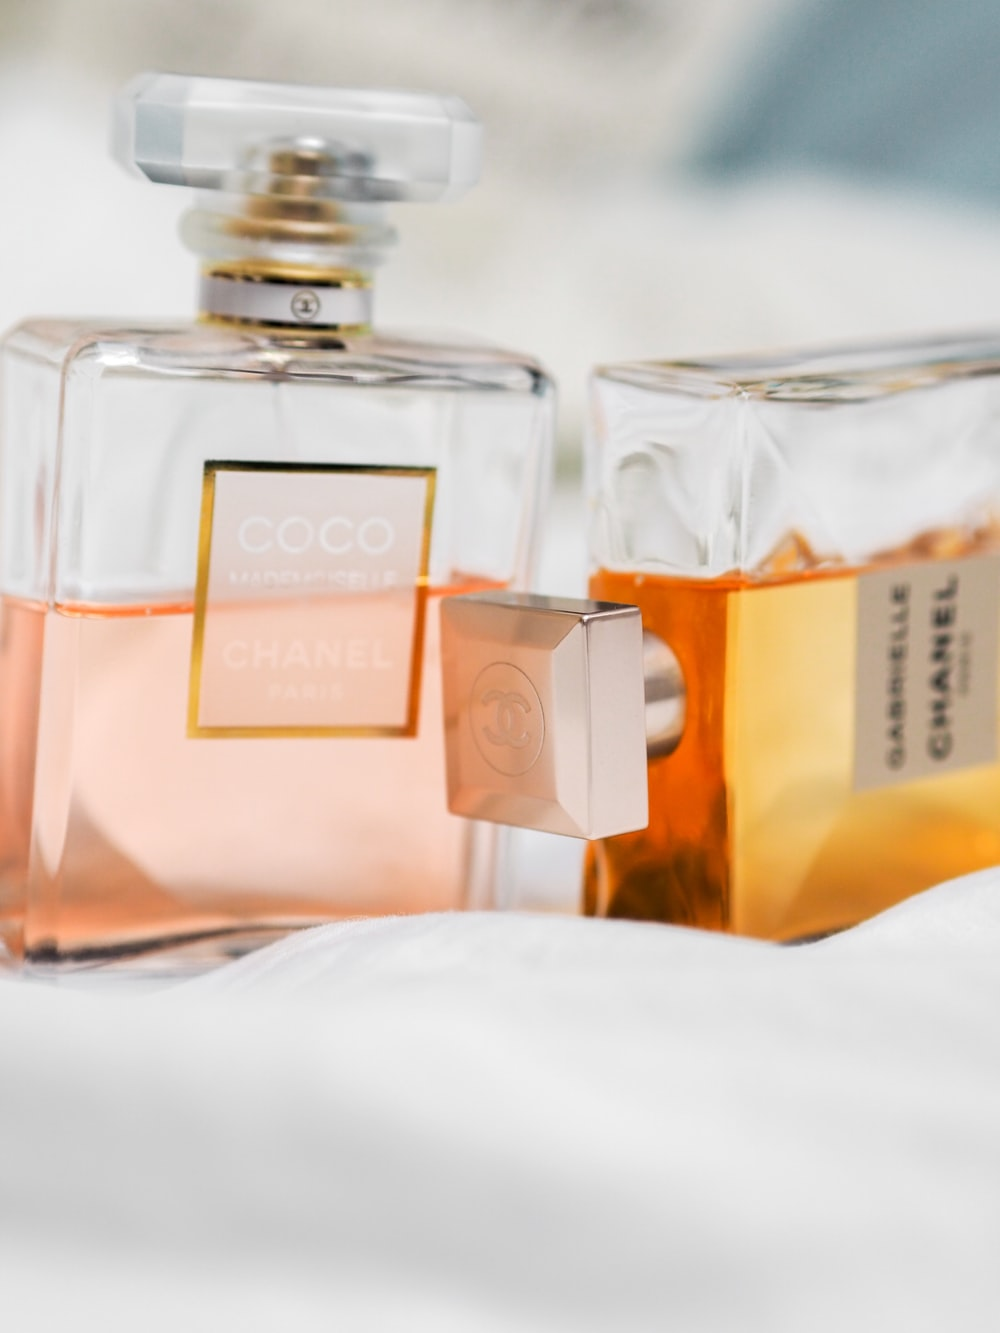 clear glass perfume bottle on white textile